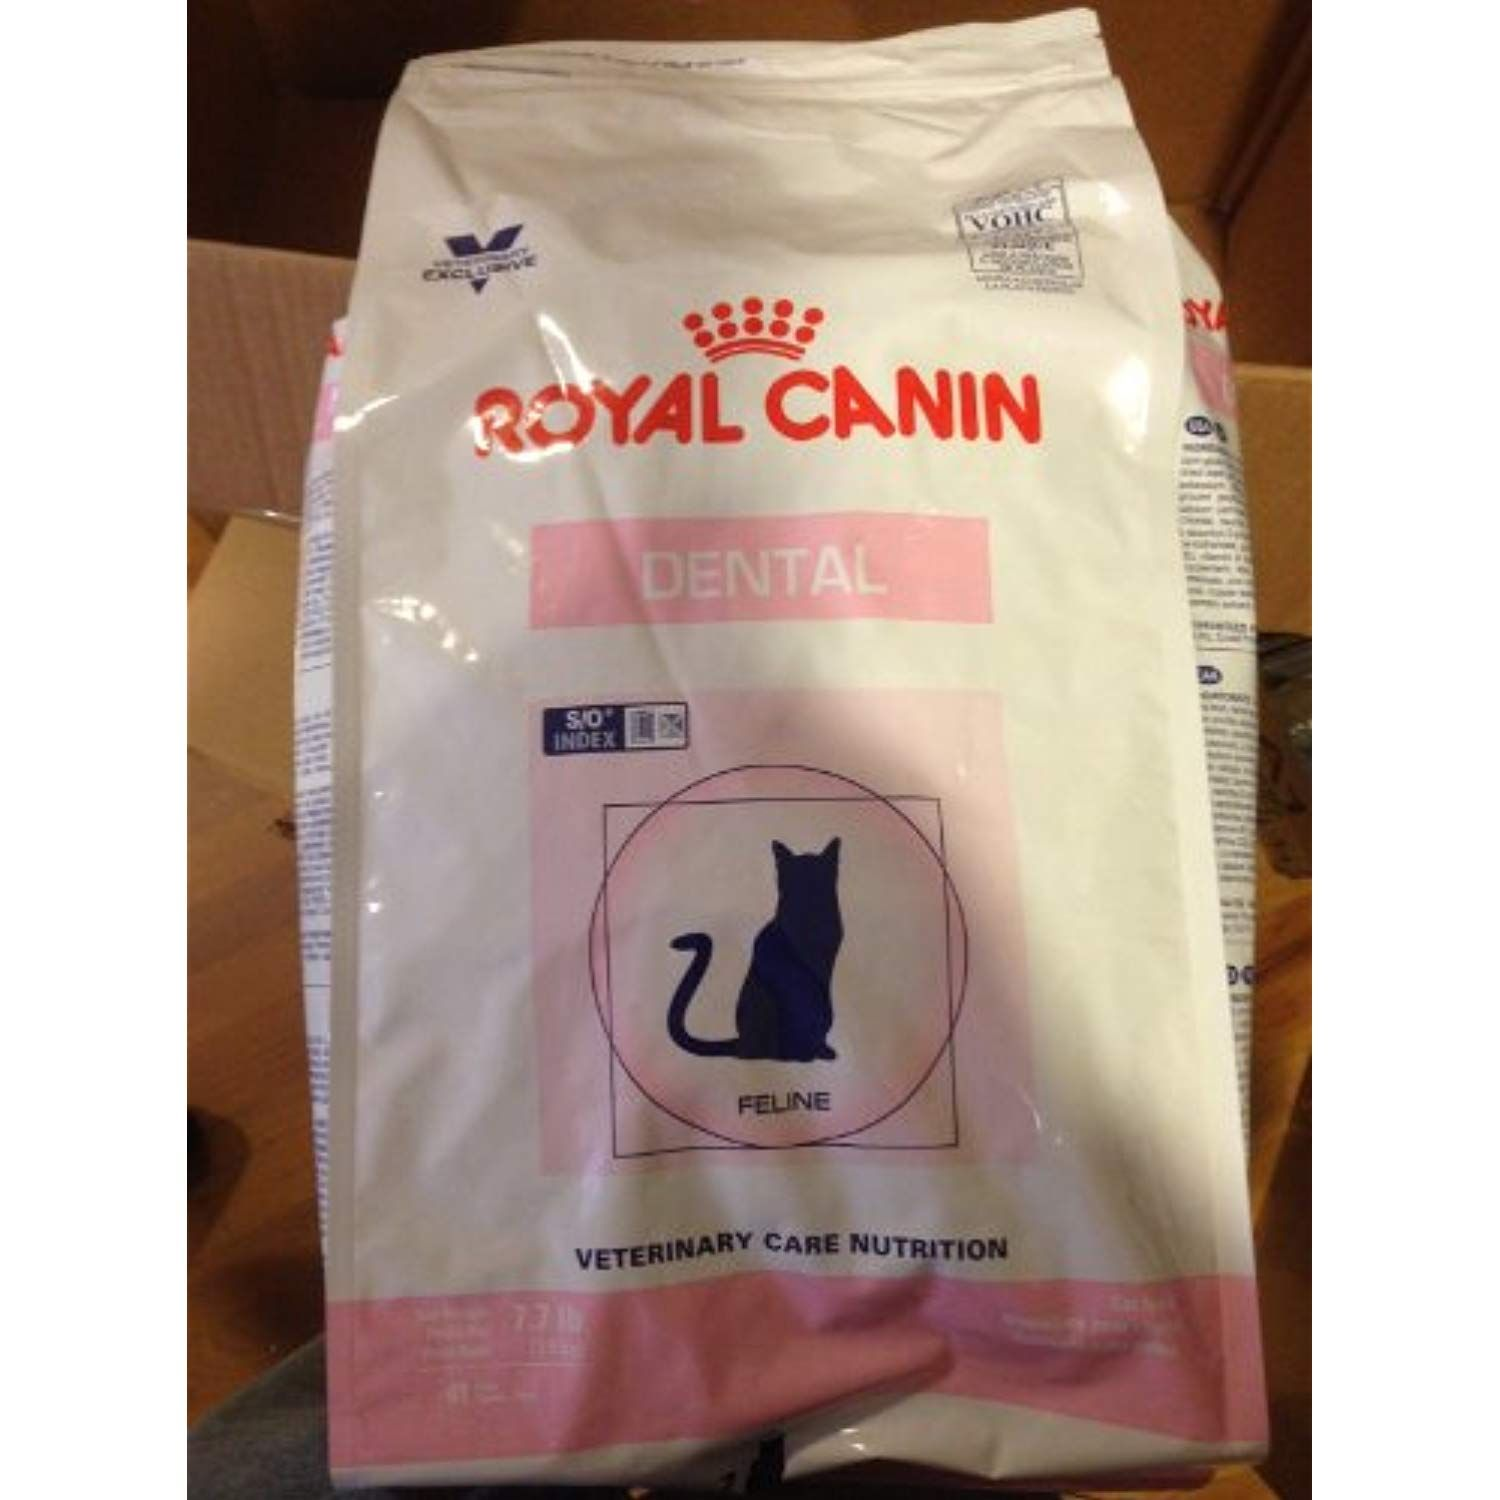 Royal Canin Feline Dental Cat Food Dry 7 7 Pound Bag 3 5 Kg For Cats And Kittens Want Additional Info Click On The Dry Cat Food Canned Cat Food Cat Food